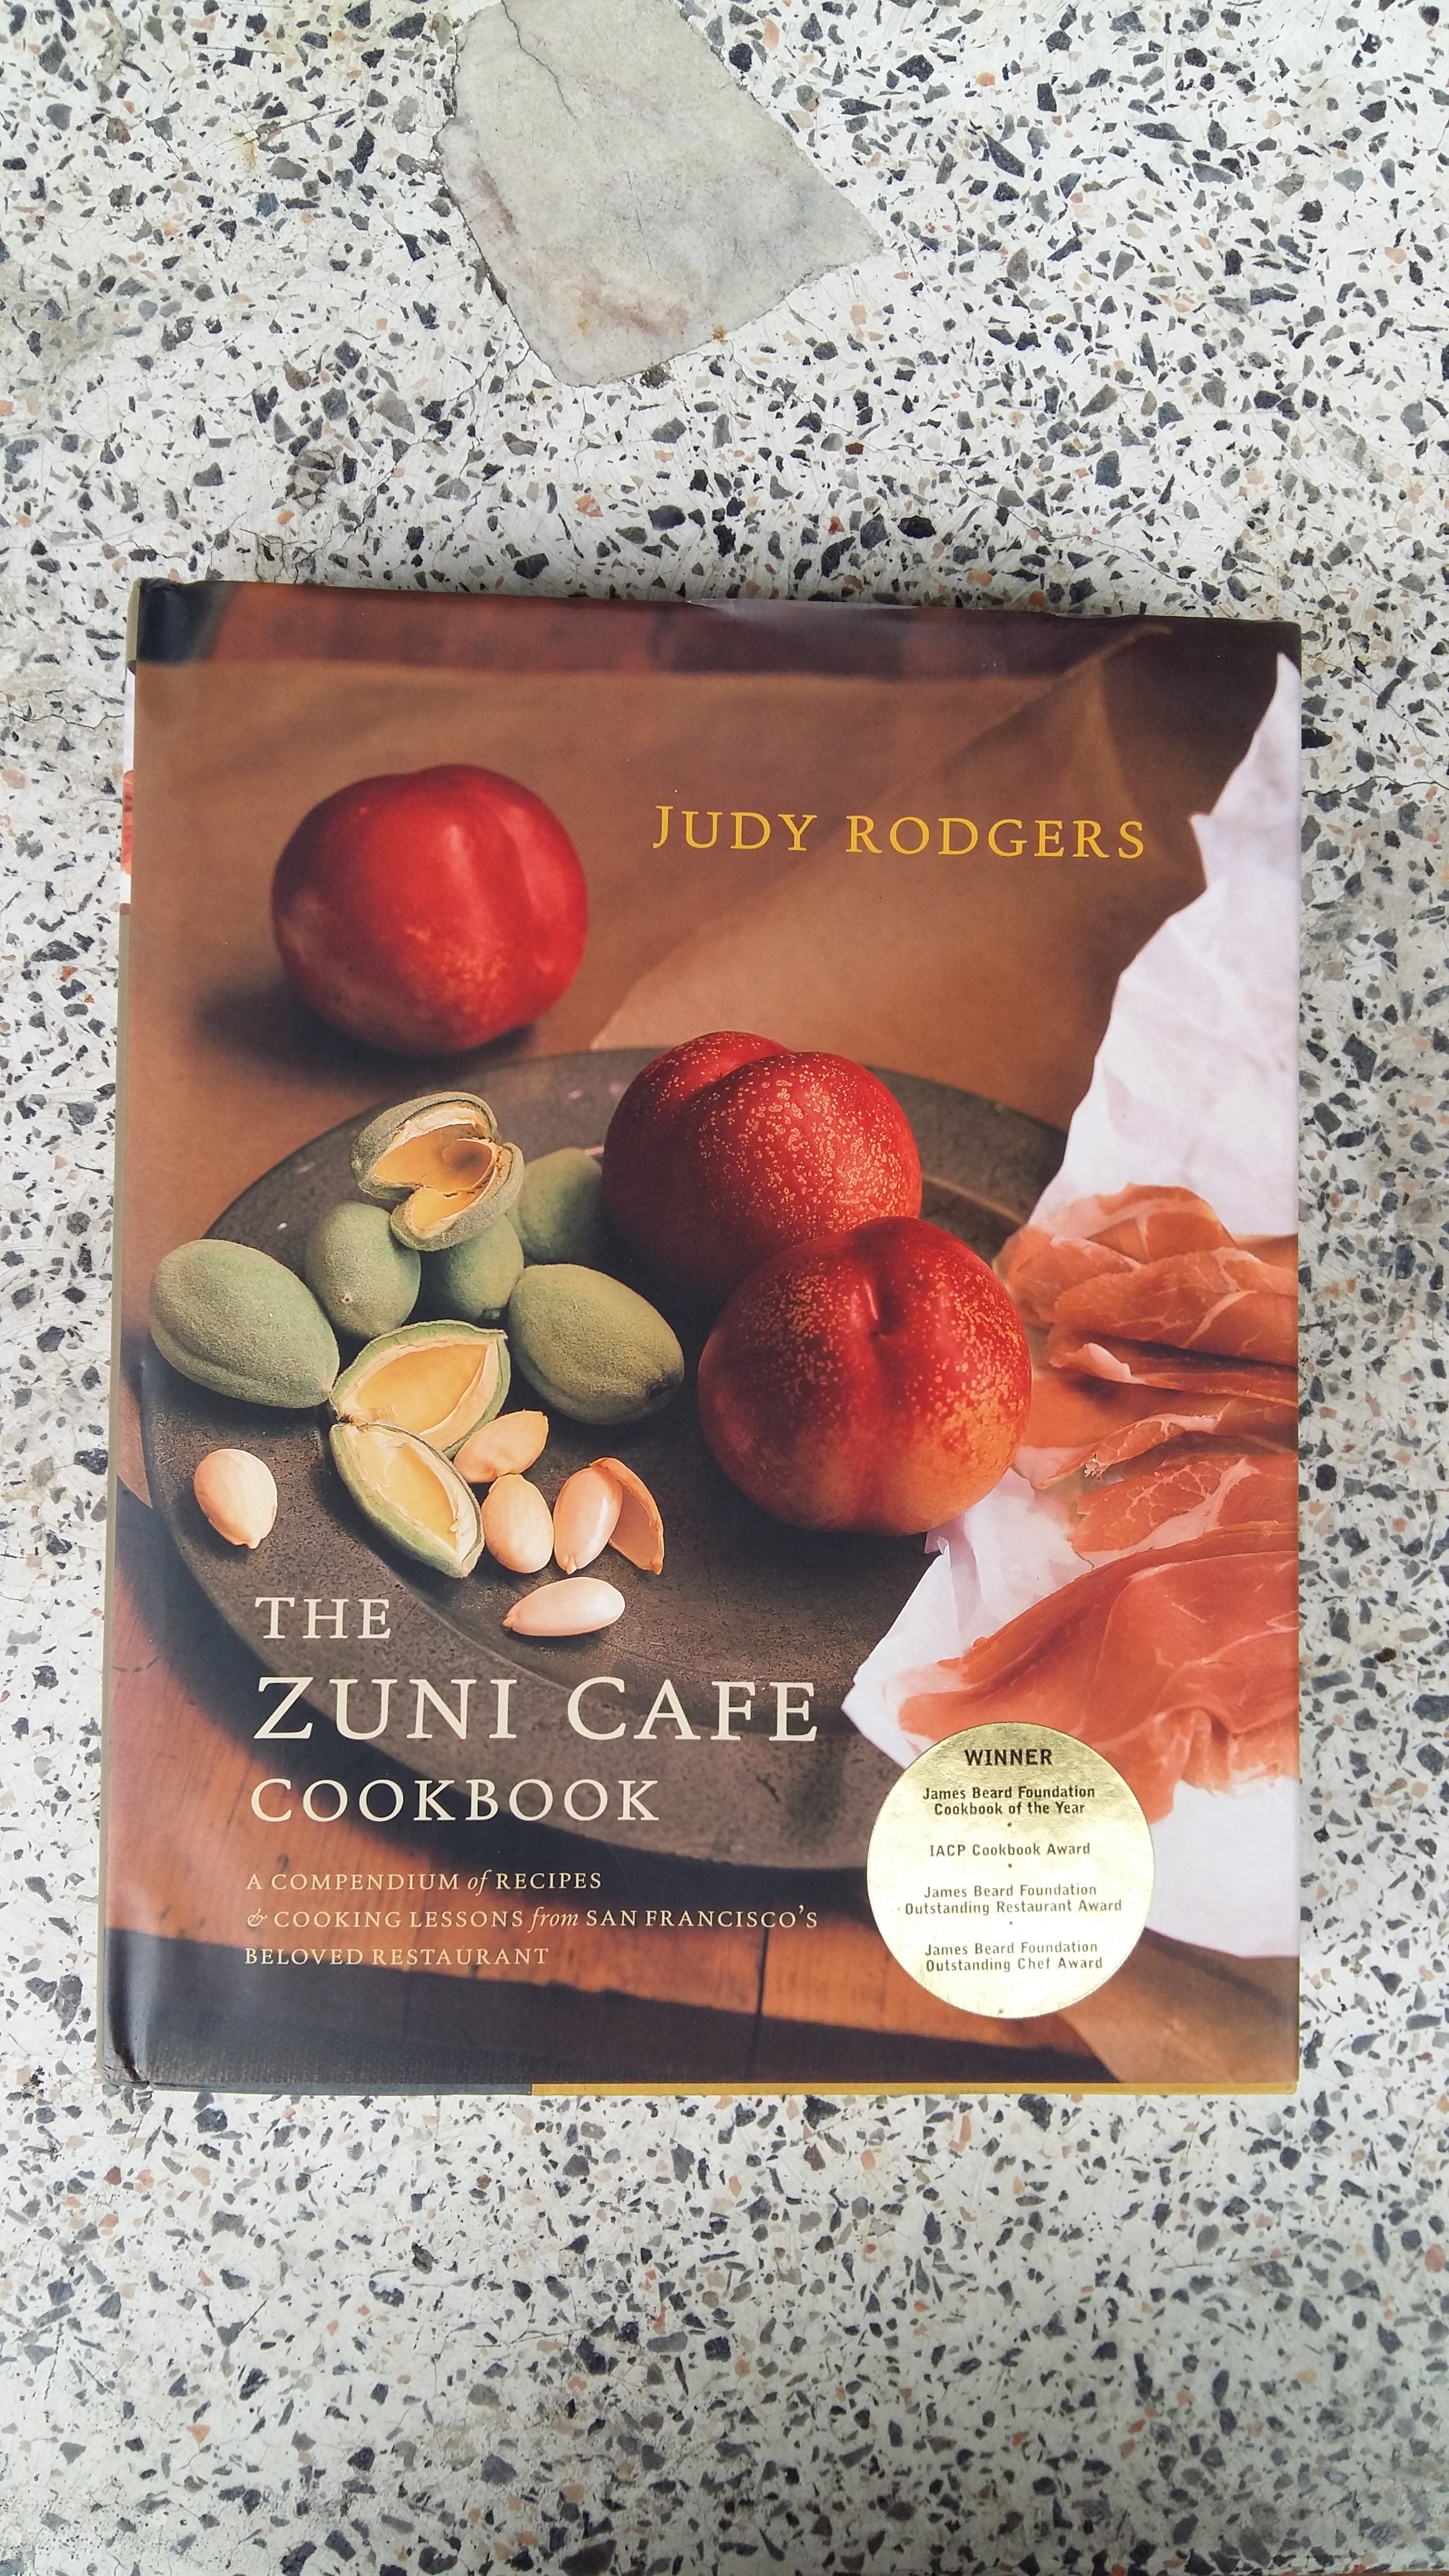 THE ZUNI CAFE COOKBOOK / JUDY RODGERS